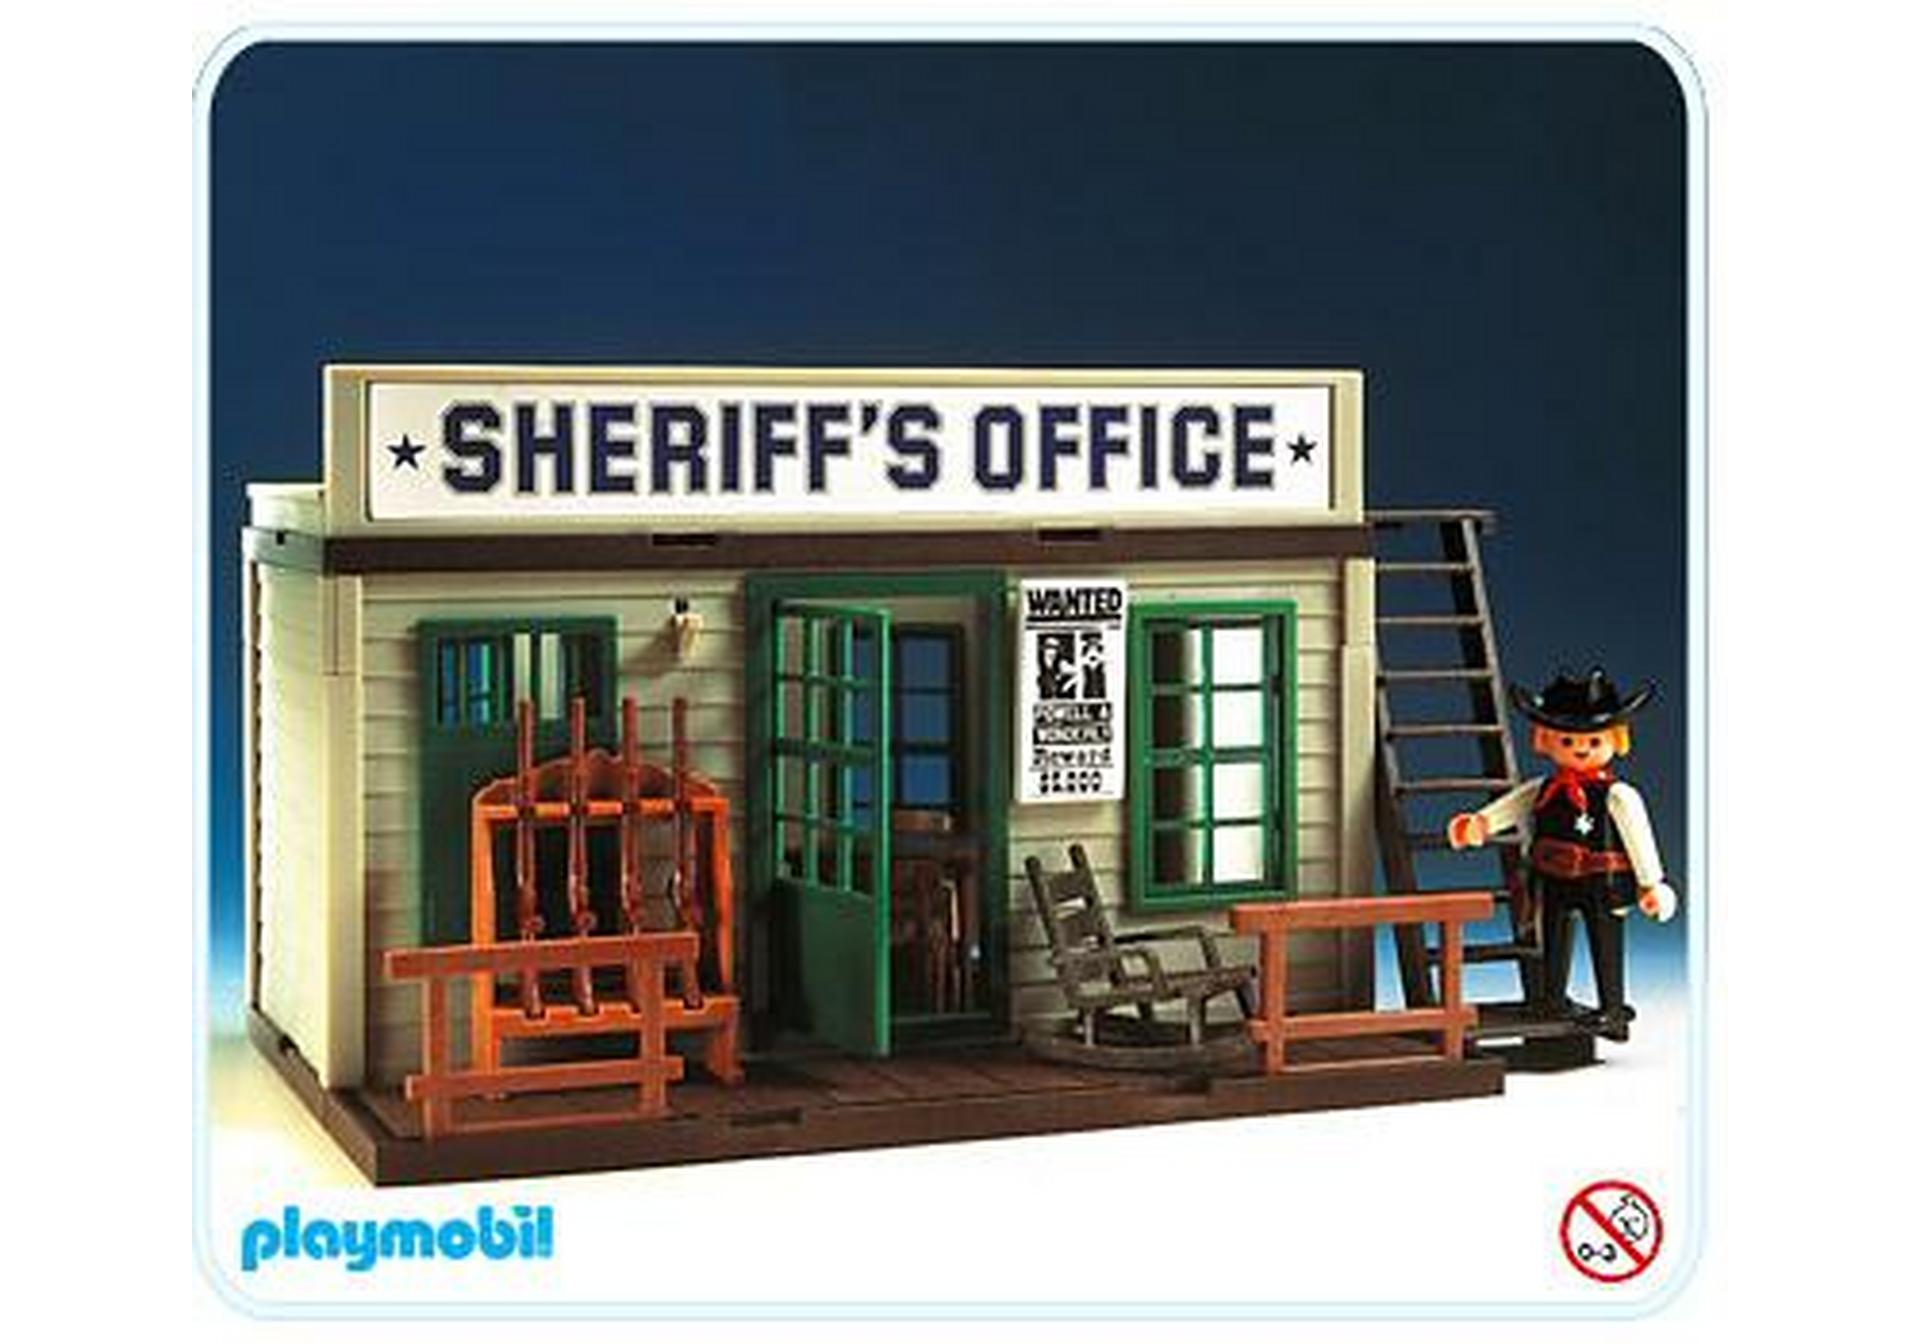 bureau du sheriff 3423 b playmobil france. Black Bedroom Furniture Sets. Home Design Ideas